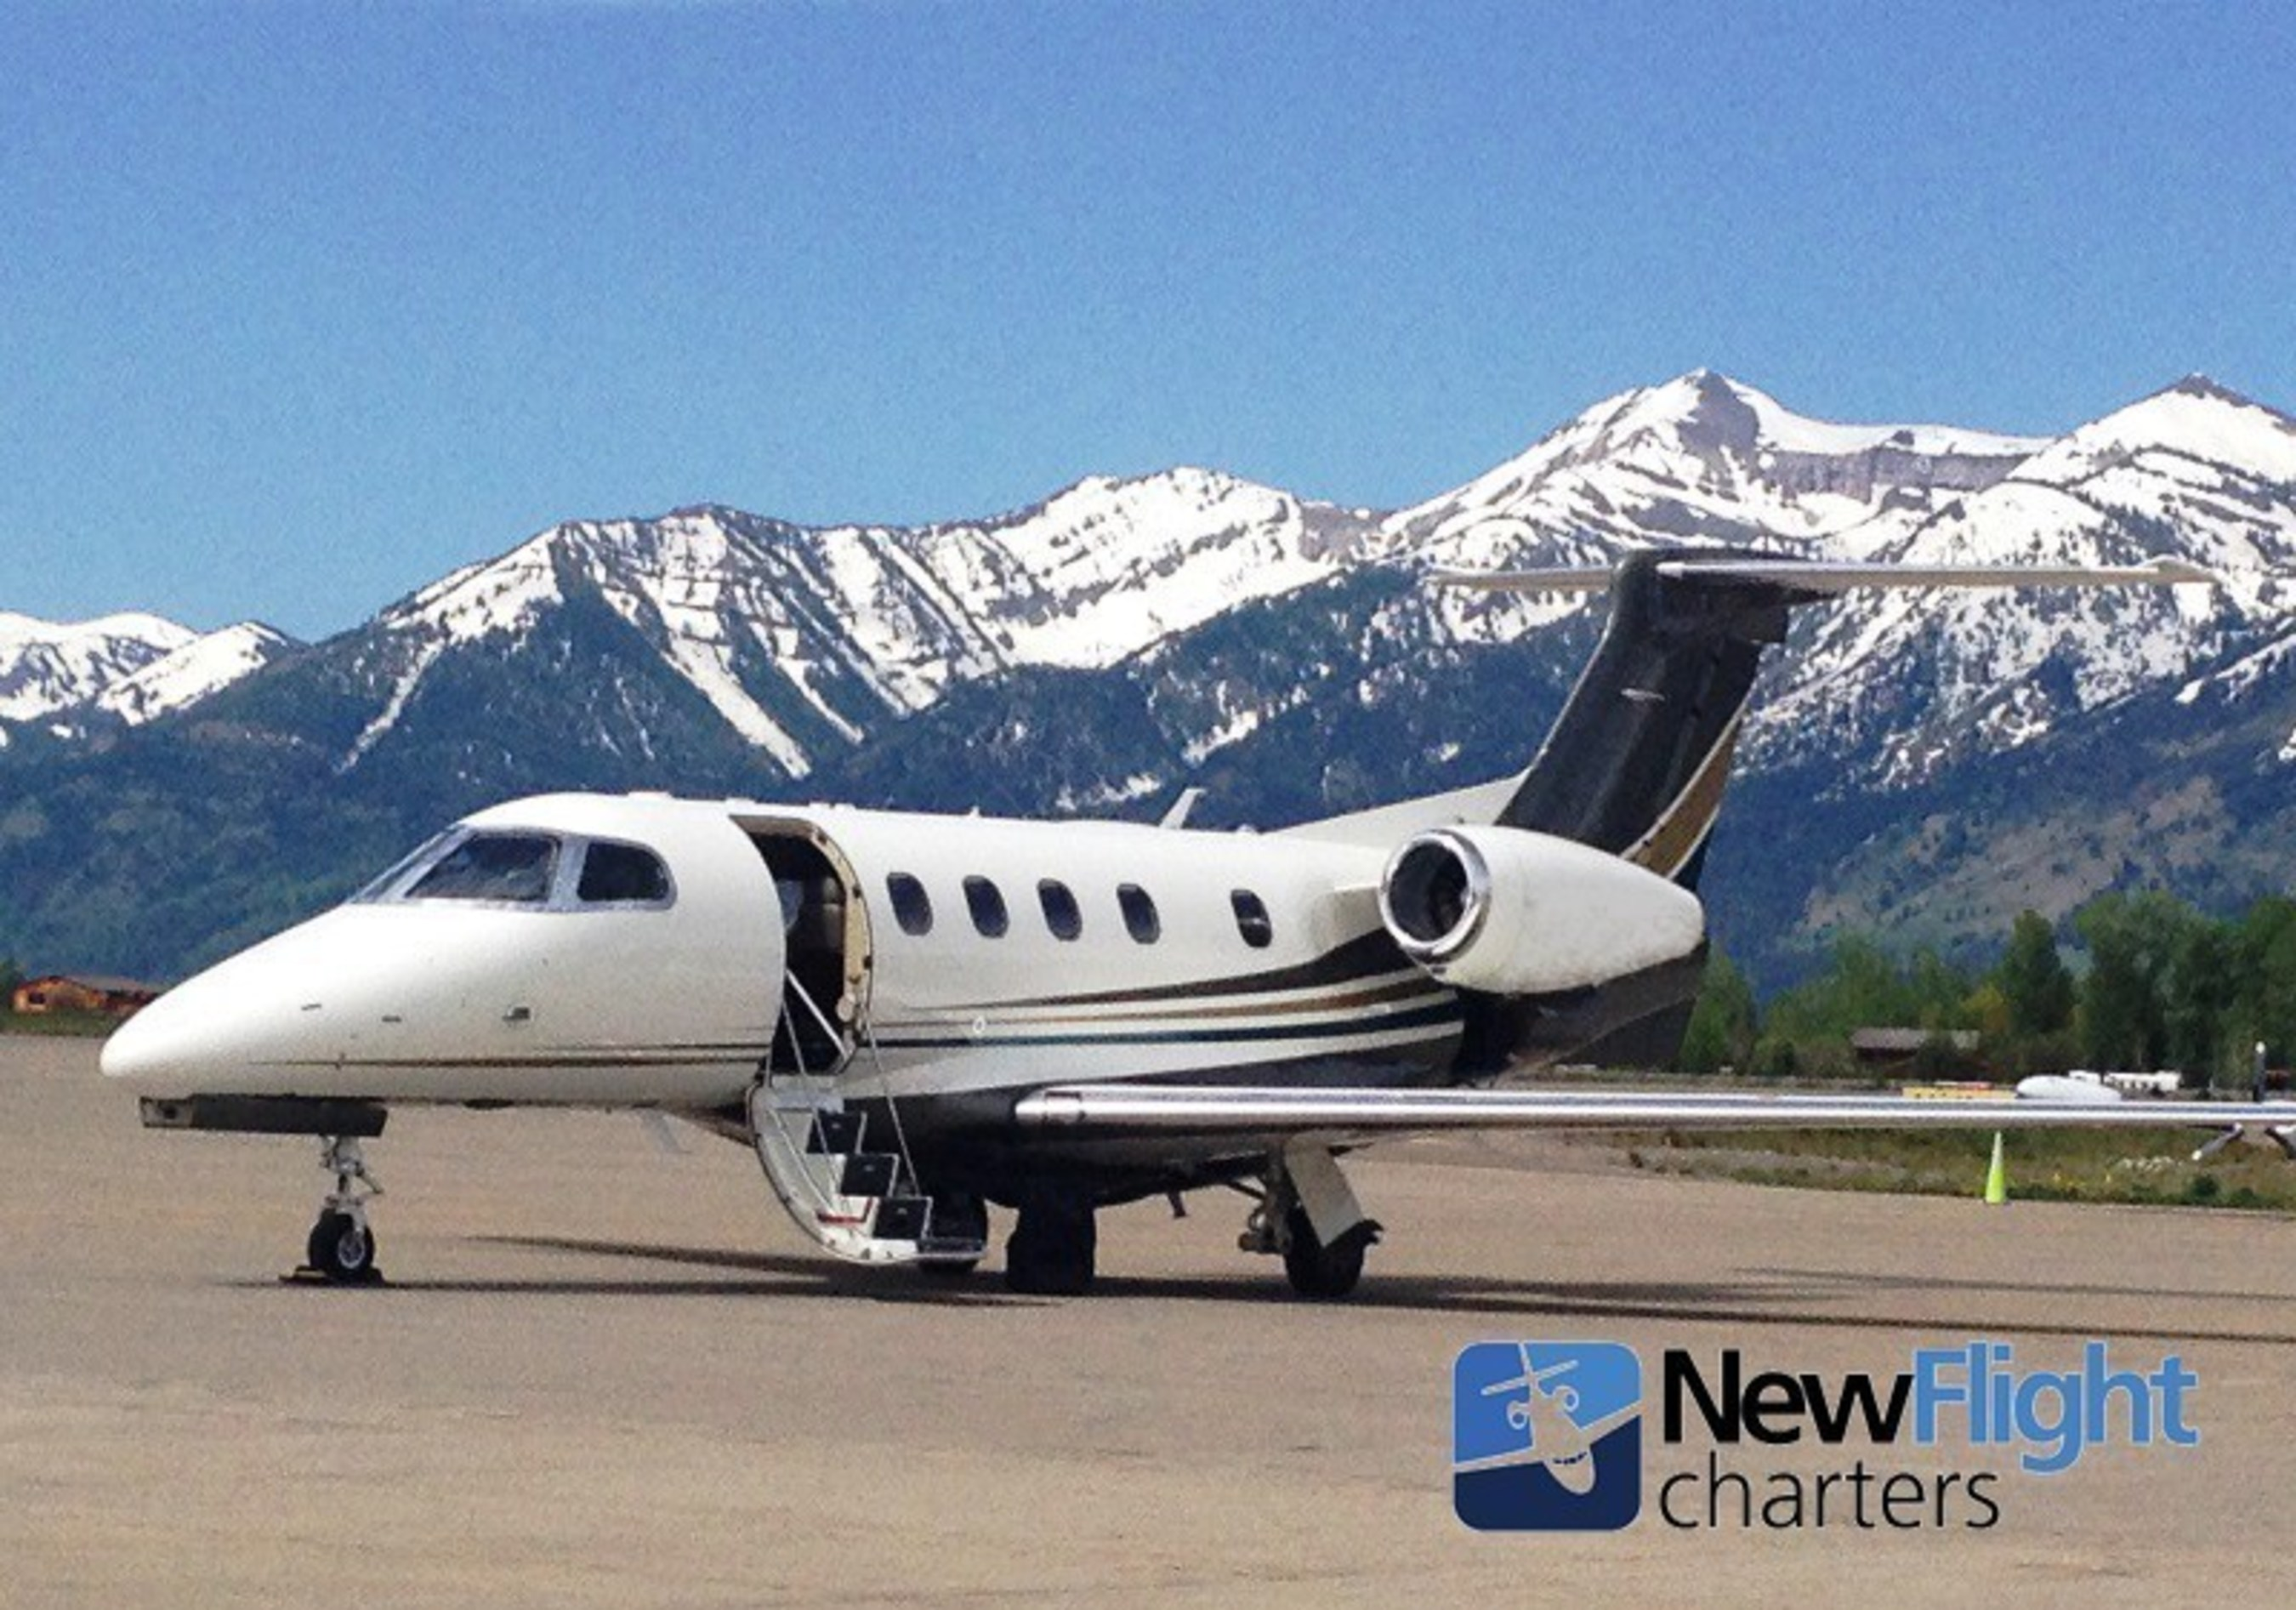 Colorado private jet charters with local leader New Flight Charters (303) 729-1444, including to/from Denver, Aspen, Eagle-Vail, Telluride, and others; largest availability and Best Price Guarantee for every flight.